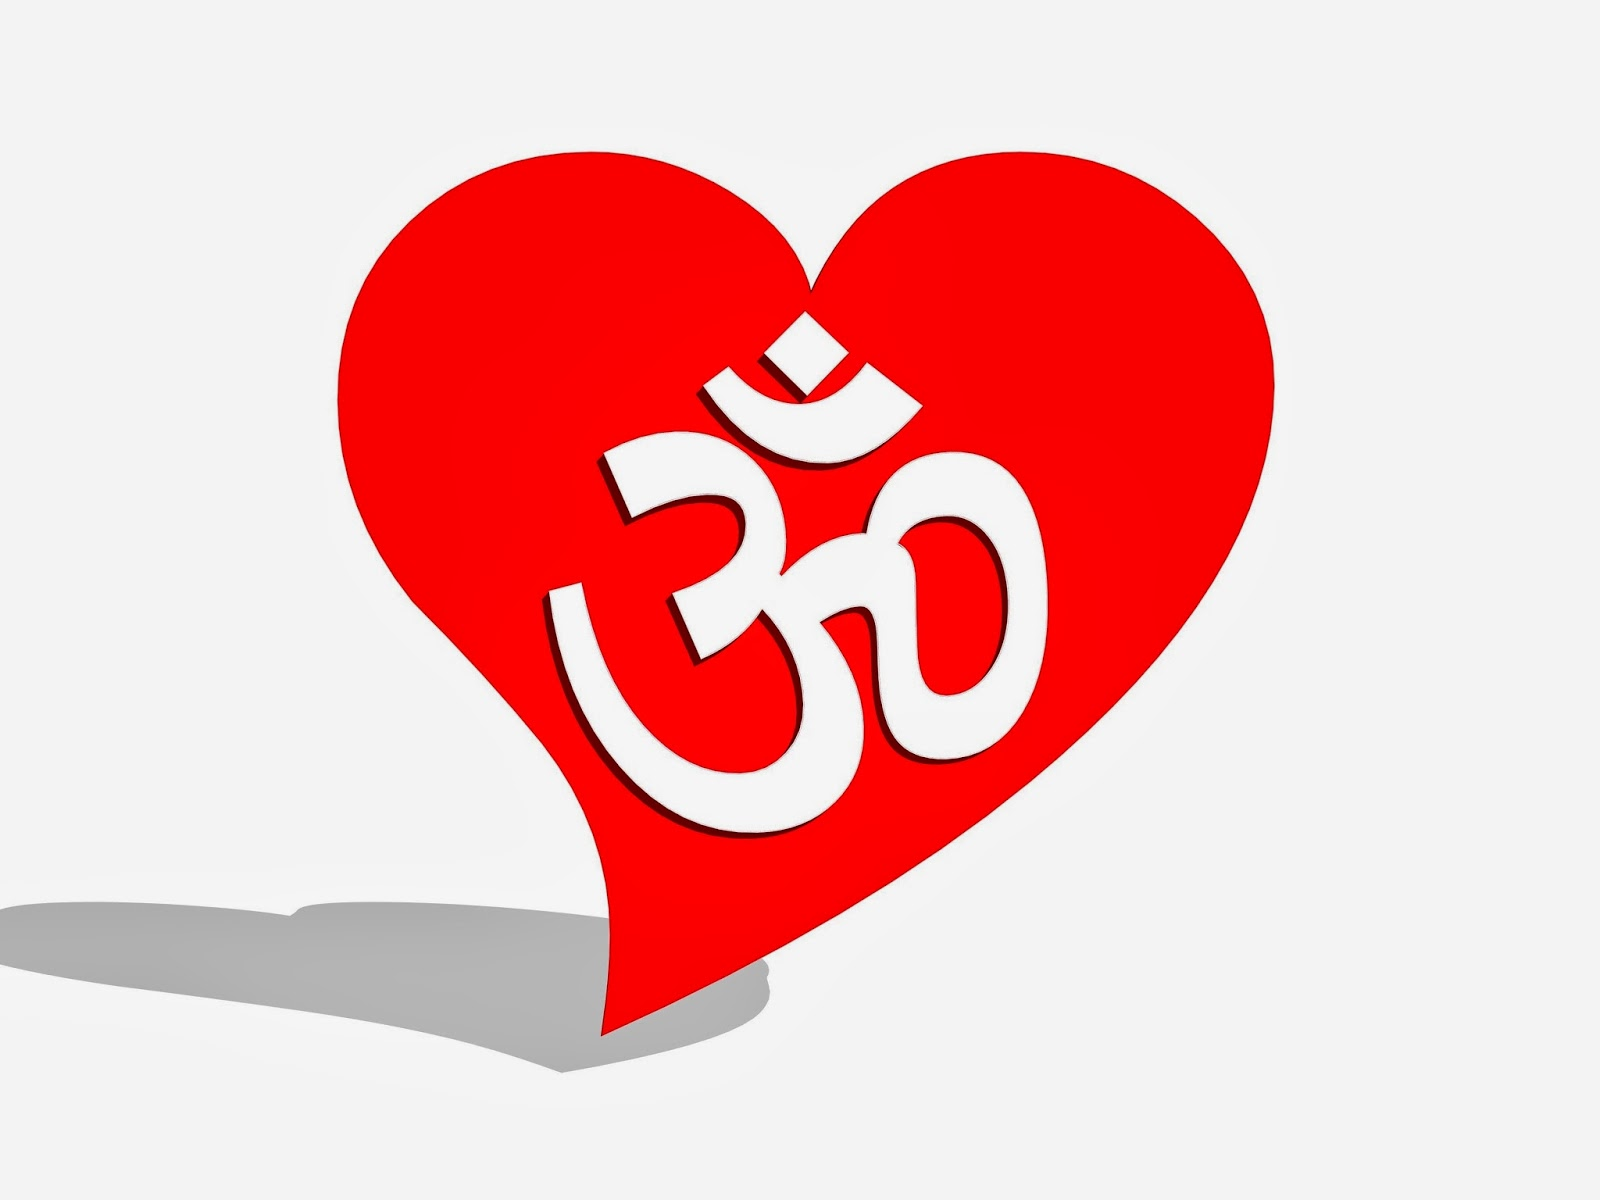 Zibu Symbol For Unconditional Love